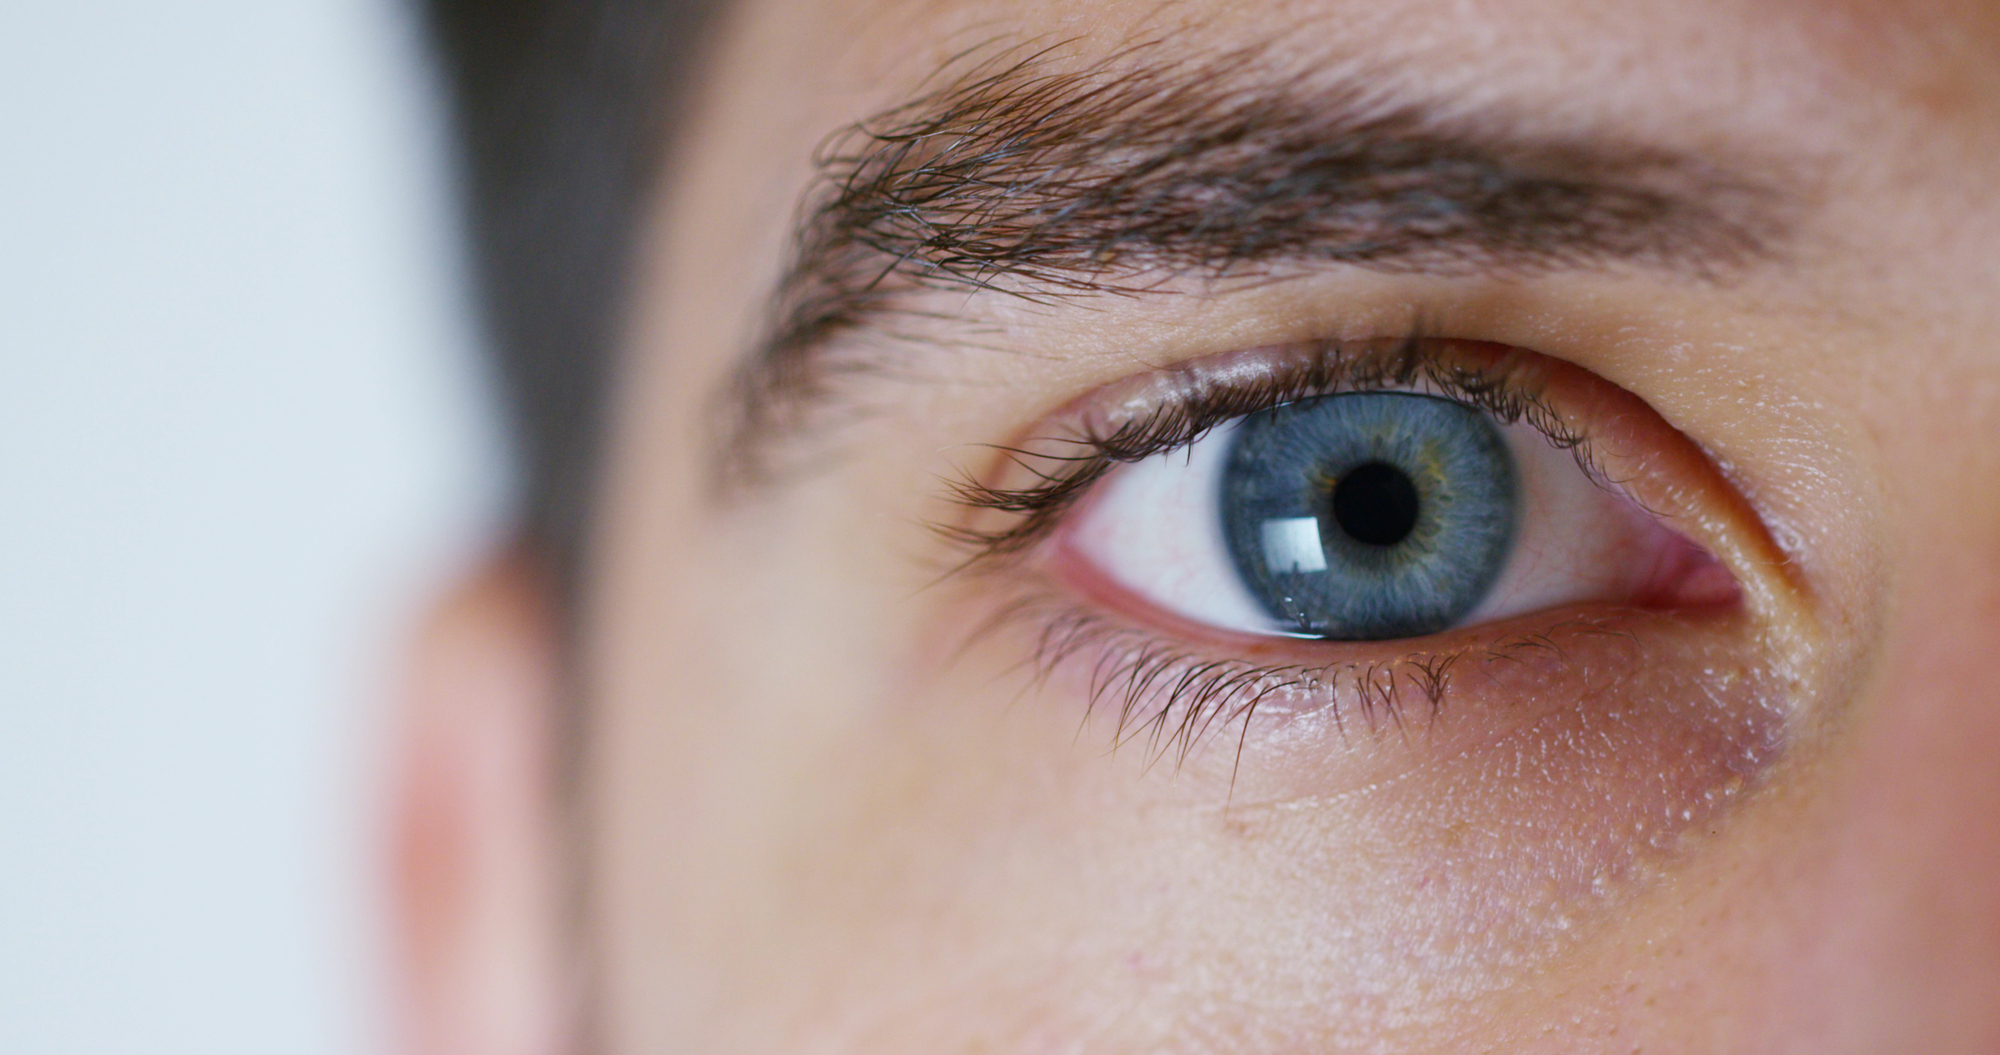 Using a light-sensing protein found in glowing algae, scientists have shown how vision can be partially restored in a patient suffering from common vision loss